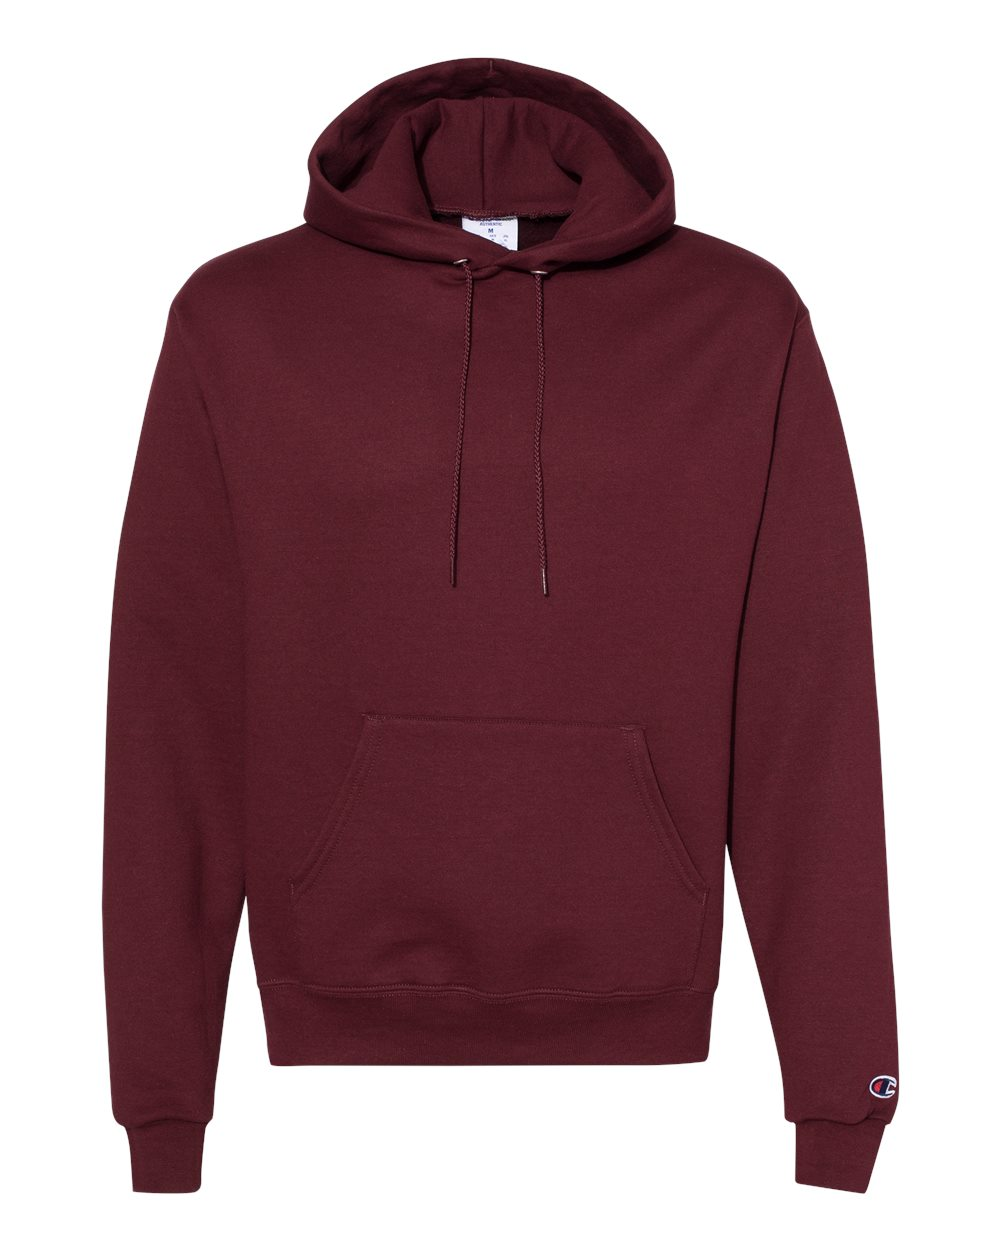 Champion-Mens-Double-Dry-Eco-Hooded-Sweatshirt-Hoodie-Pullover-S700-up-to-3XL miniature 21